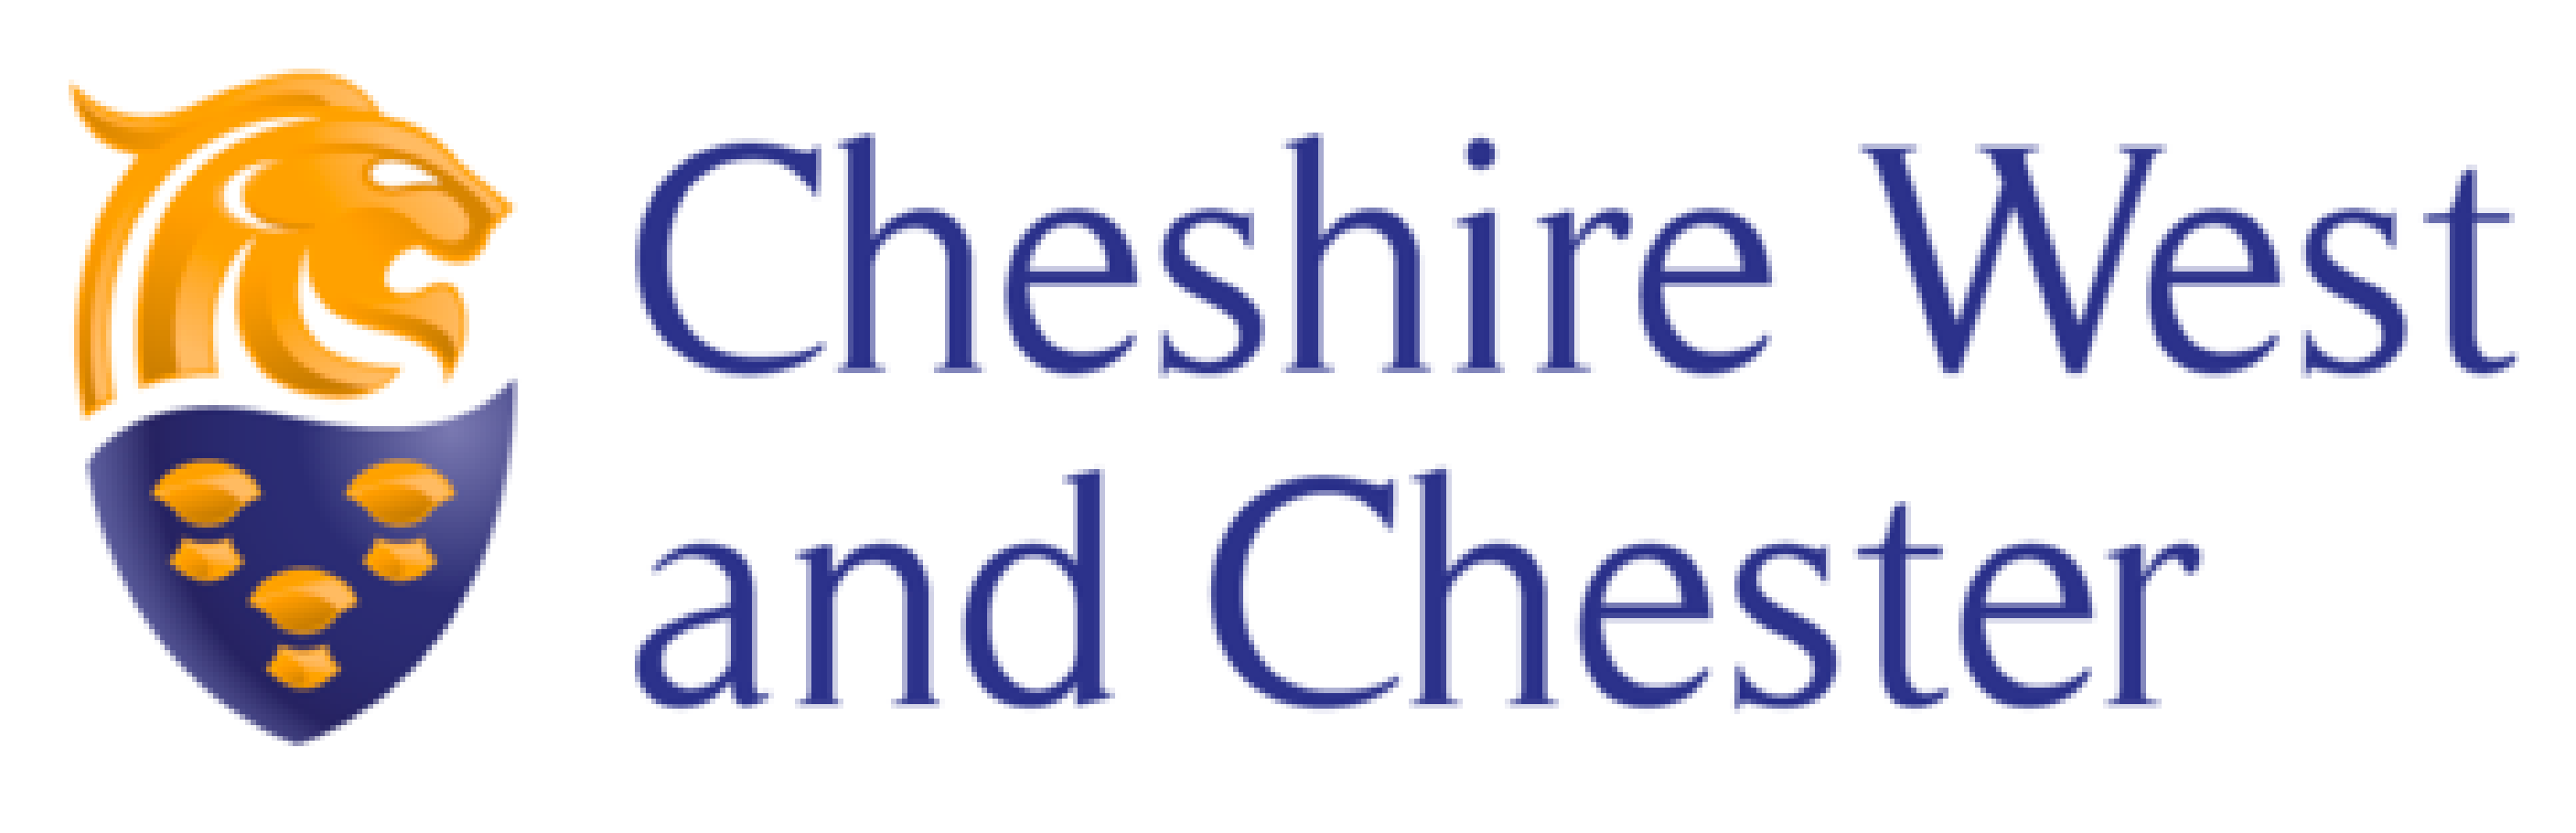 cheshire west logo